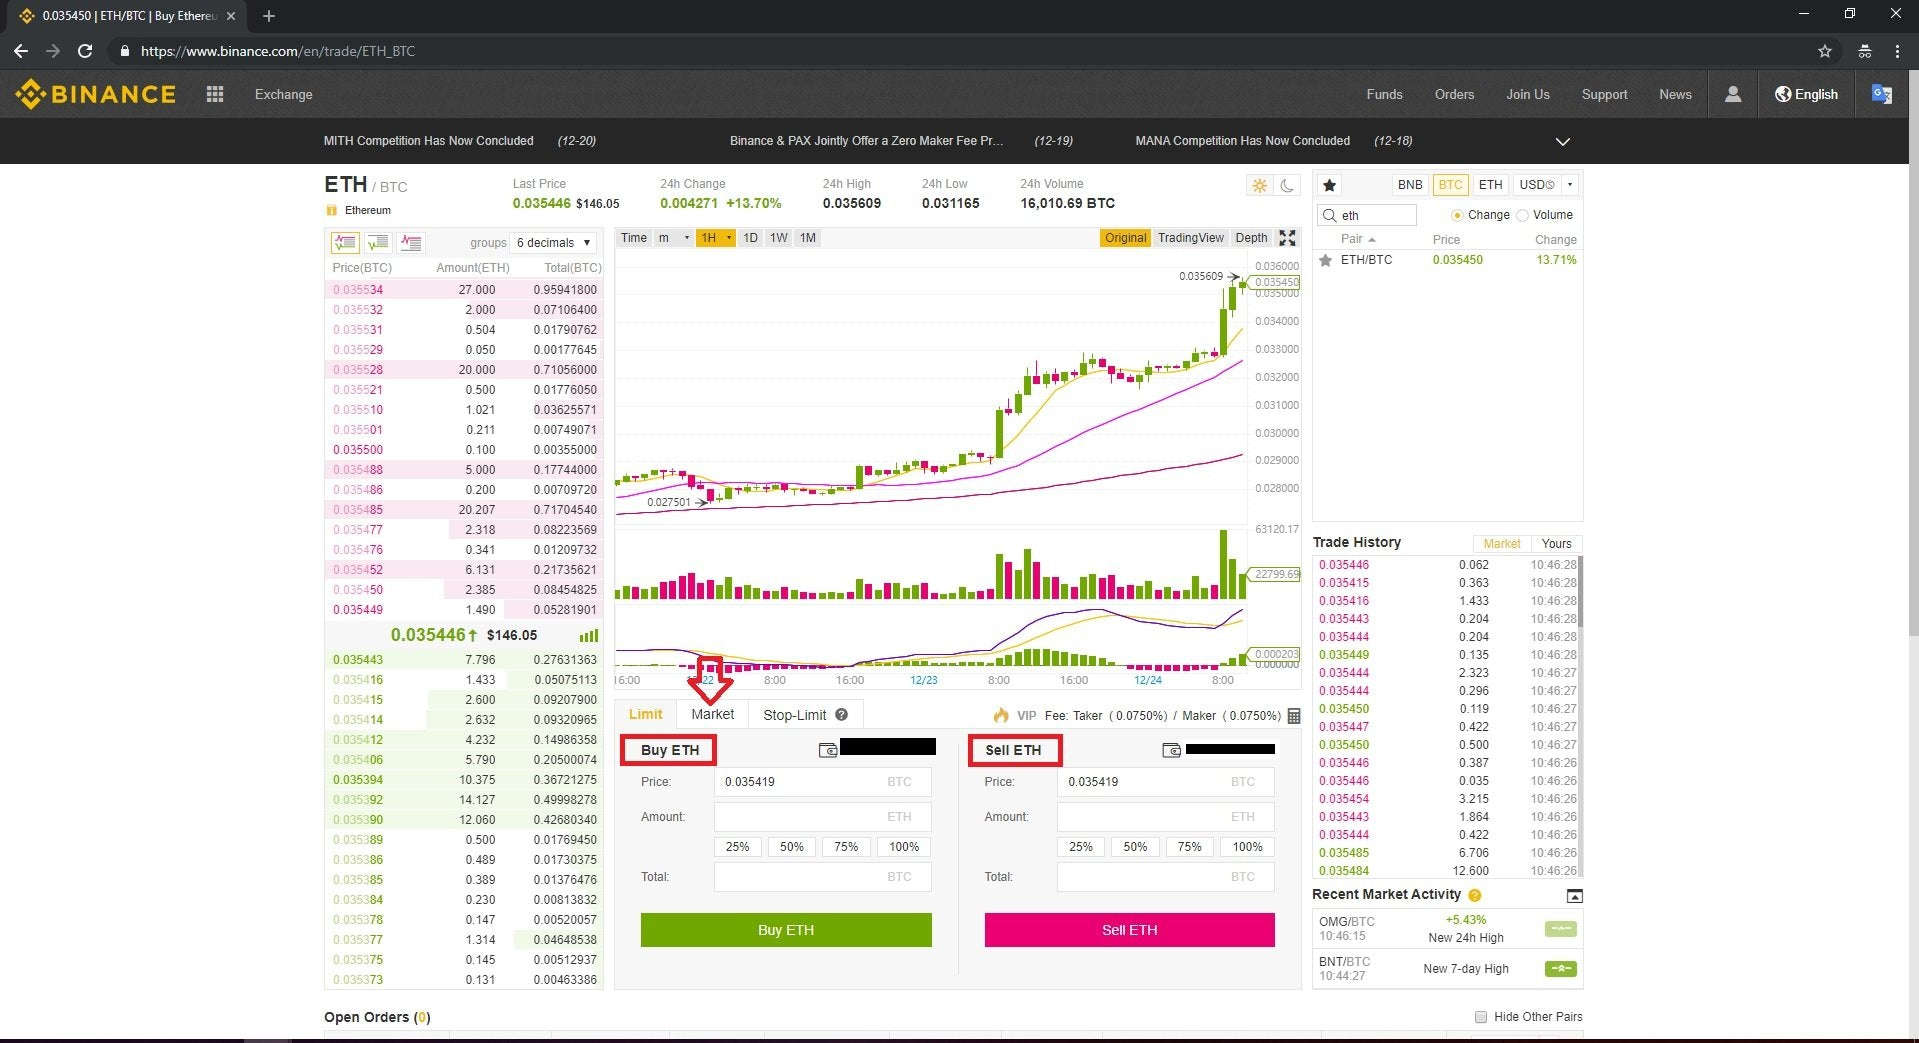 binance exchange trading page